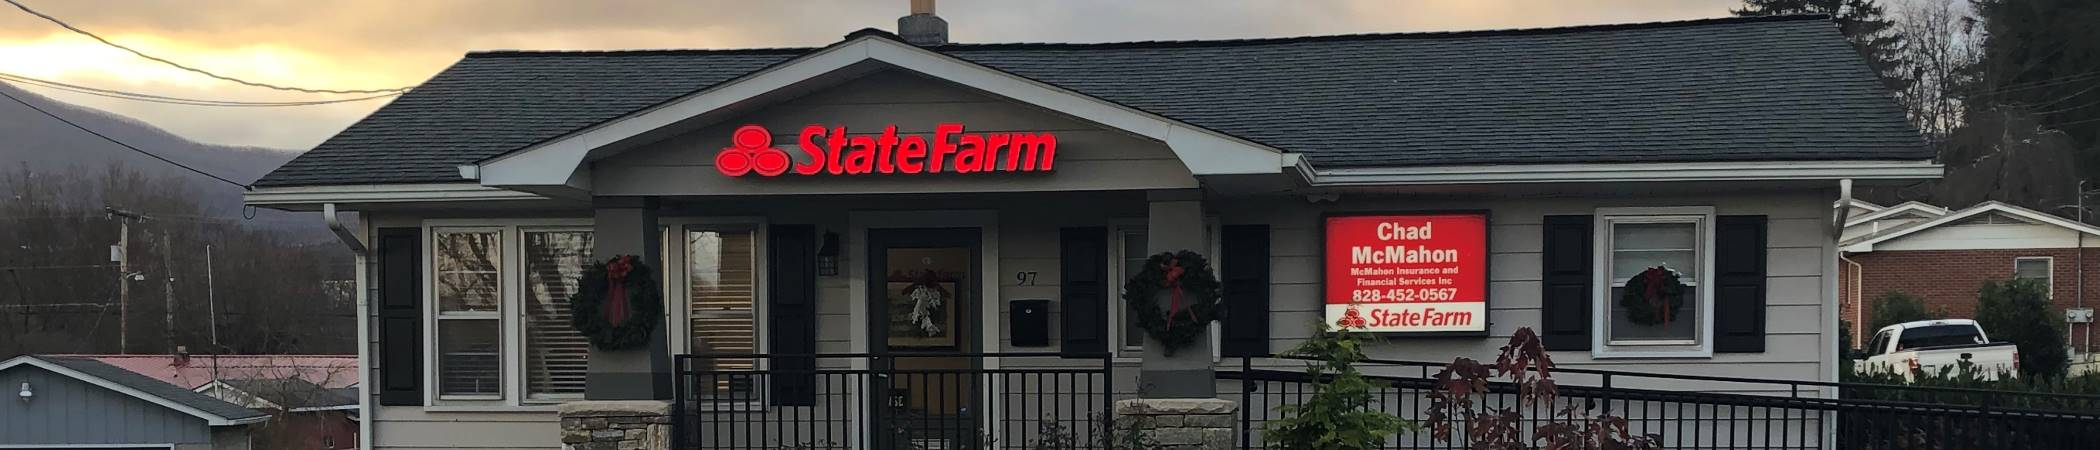 Chad McMahon State Farm Insurance in Waynesville, NC | Home, Auto Insurance & more